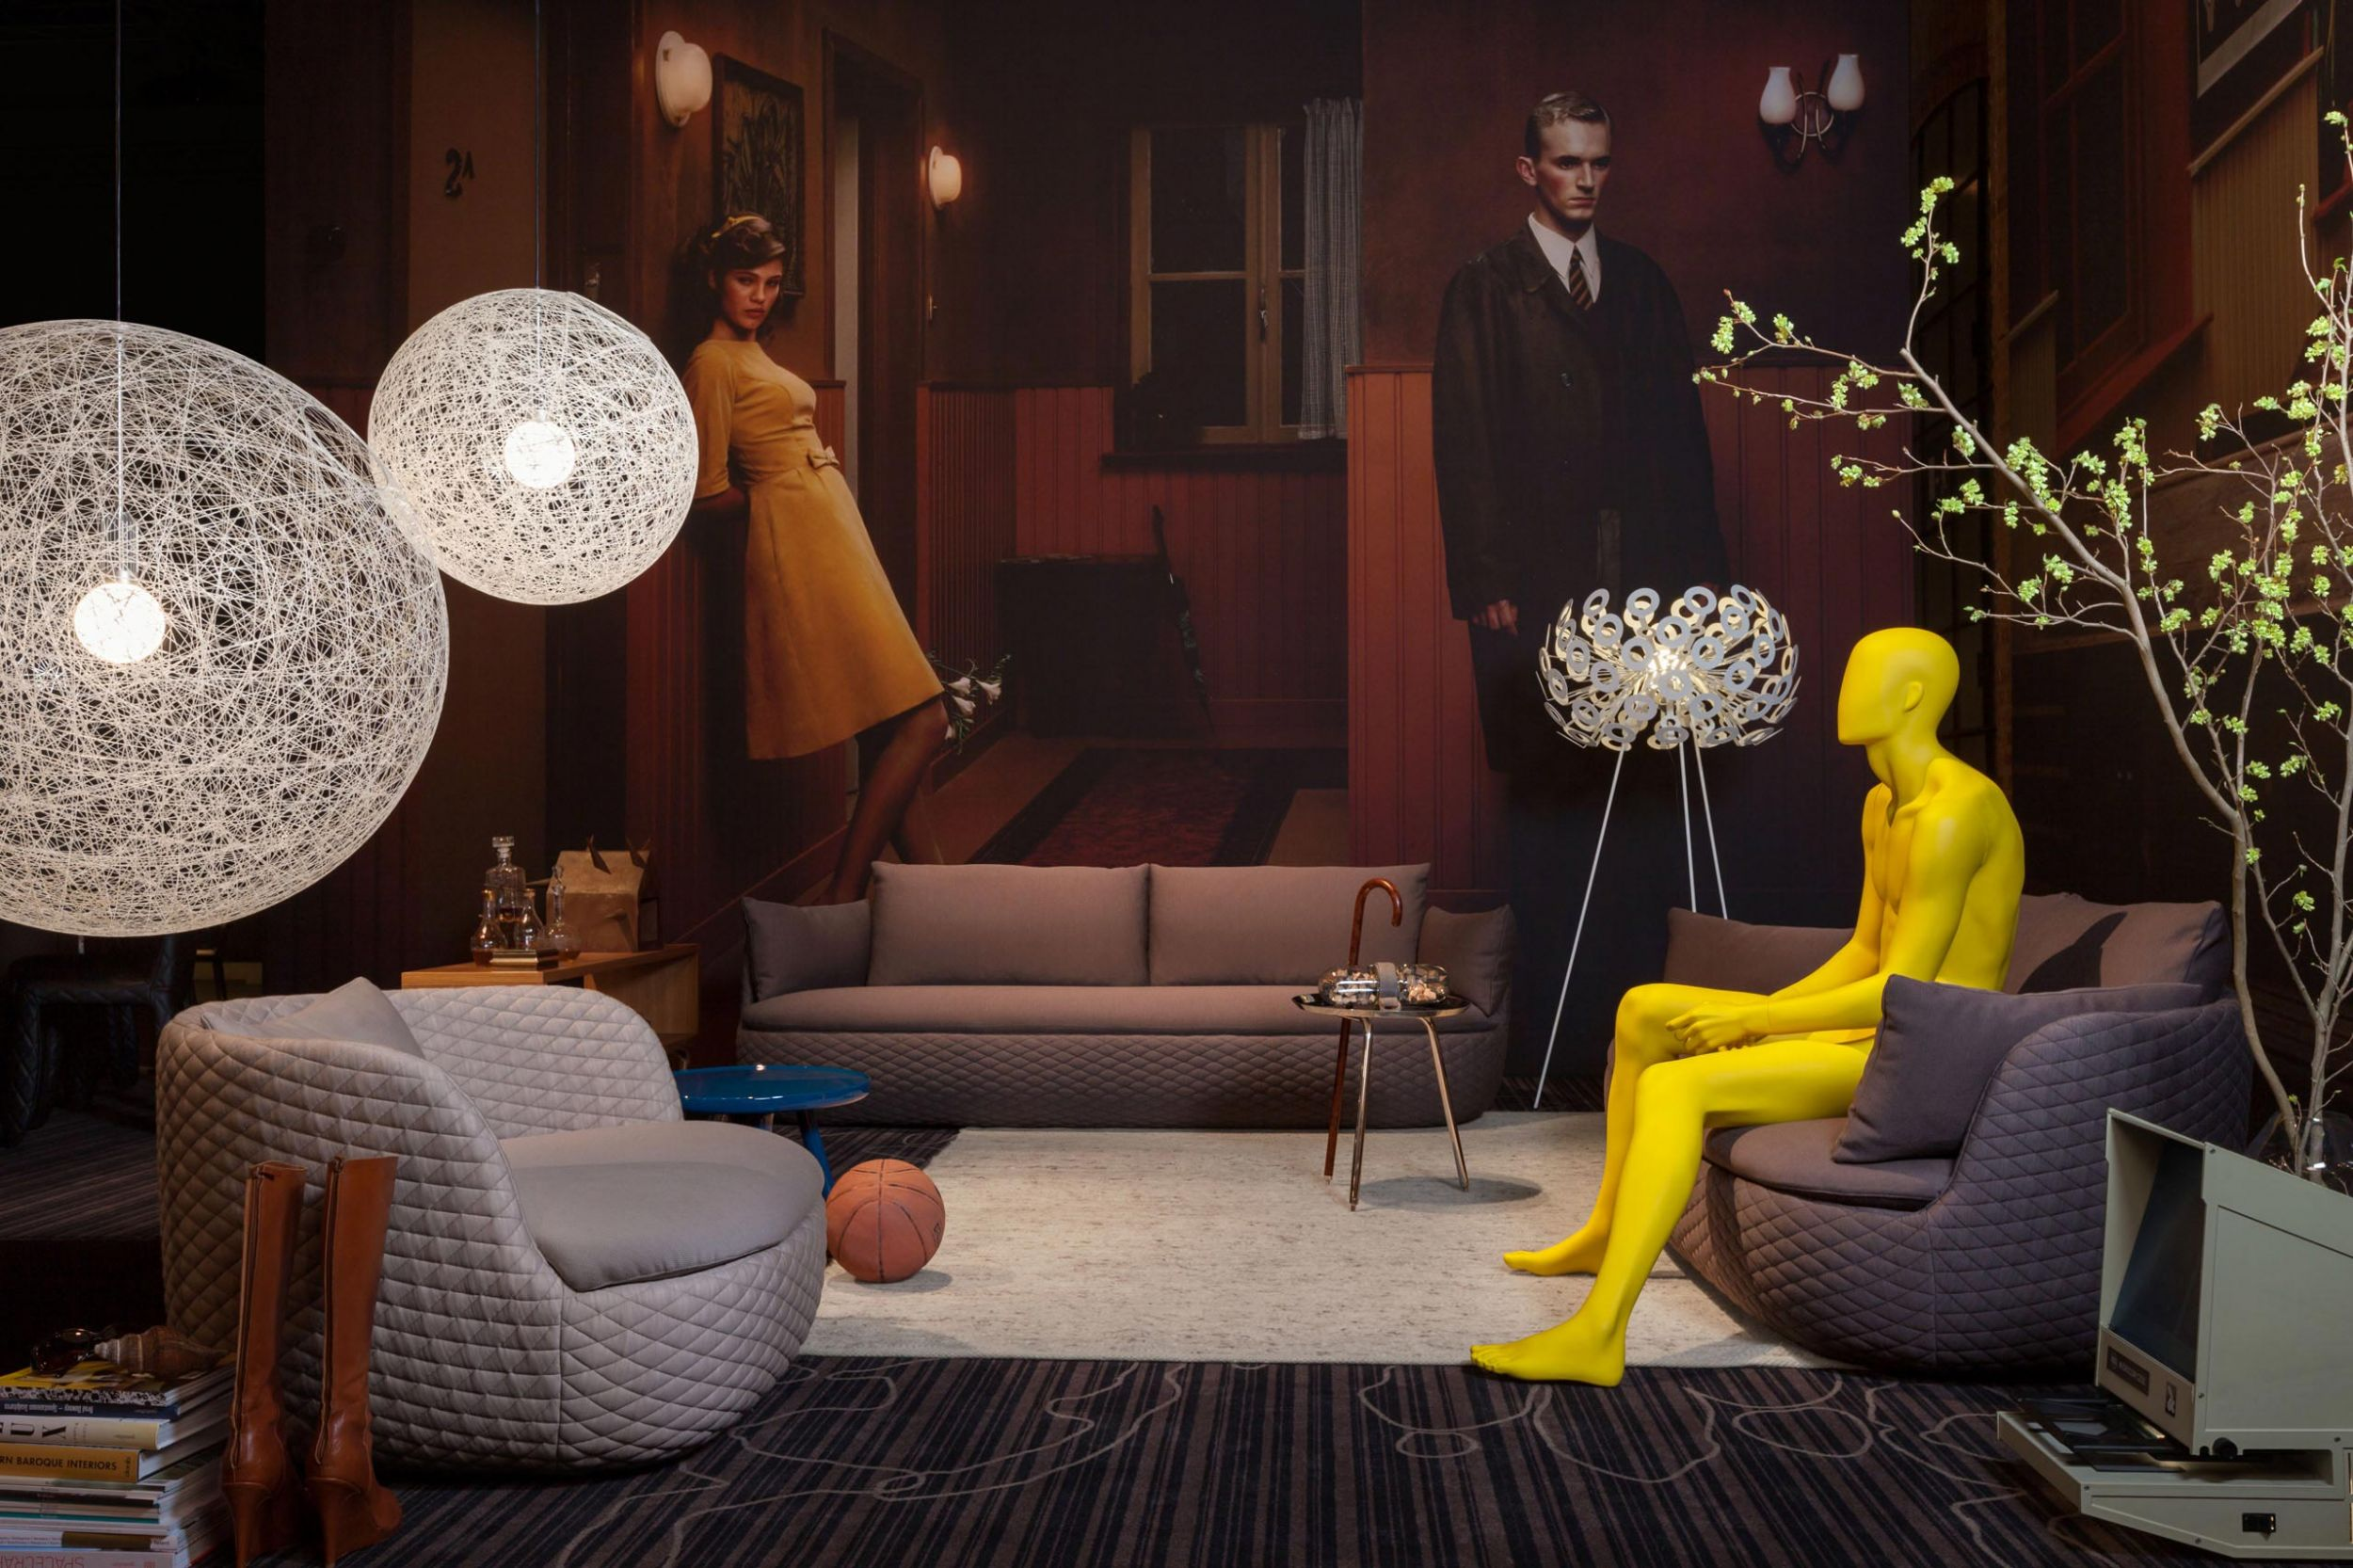 Room set of Moooi's work